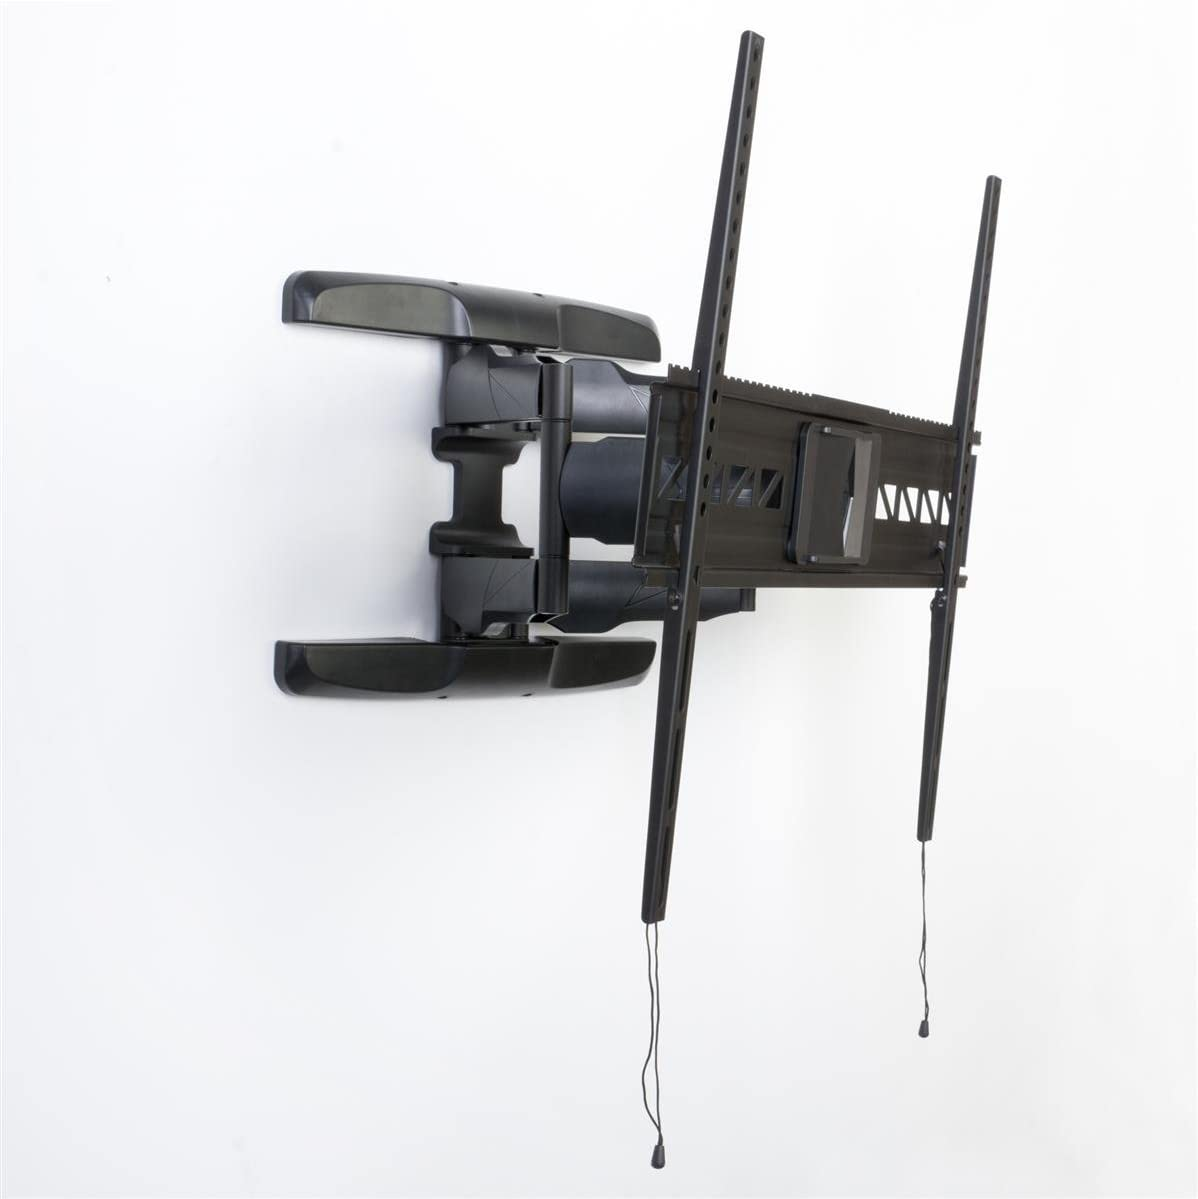 Full Motion TV Mount for Wall Holds a Flat Panel LCD Monitor Between 47 and 84 , Tilting Bracket and Articulating, Panning Arm, VESA-Compatible, Black, Steel